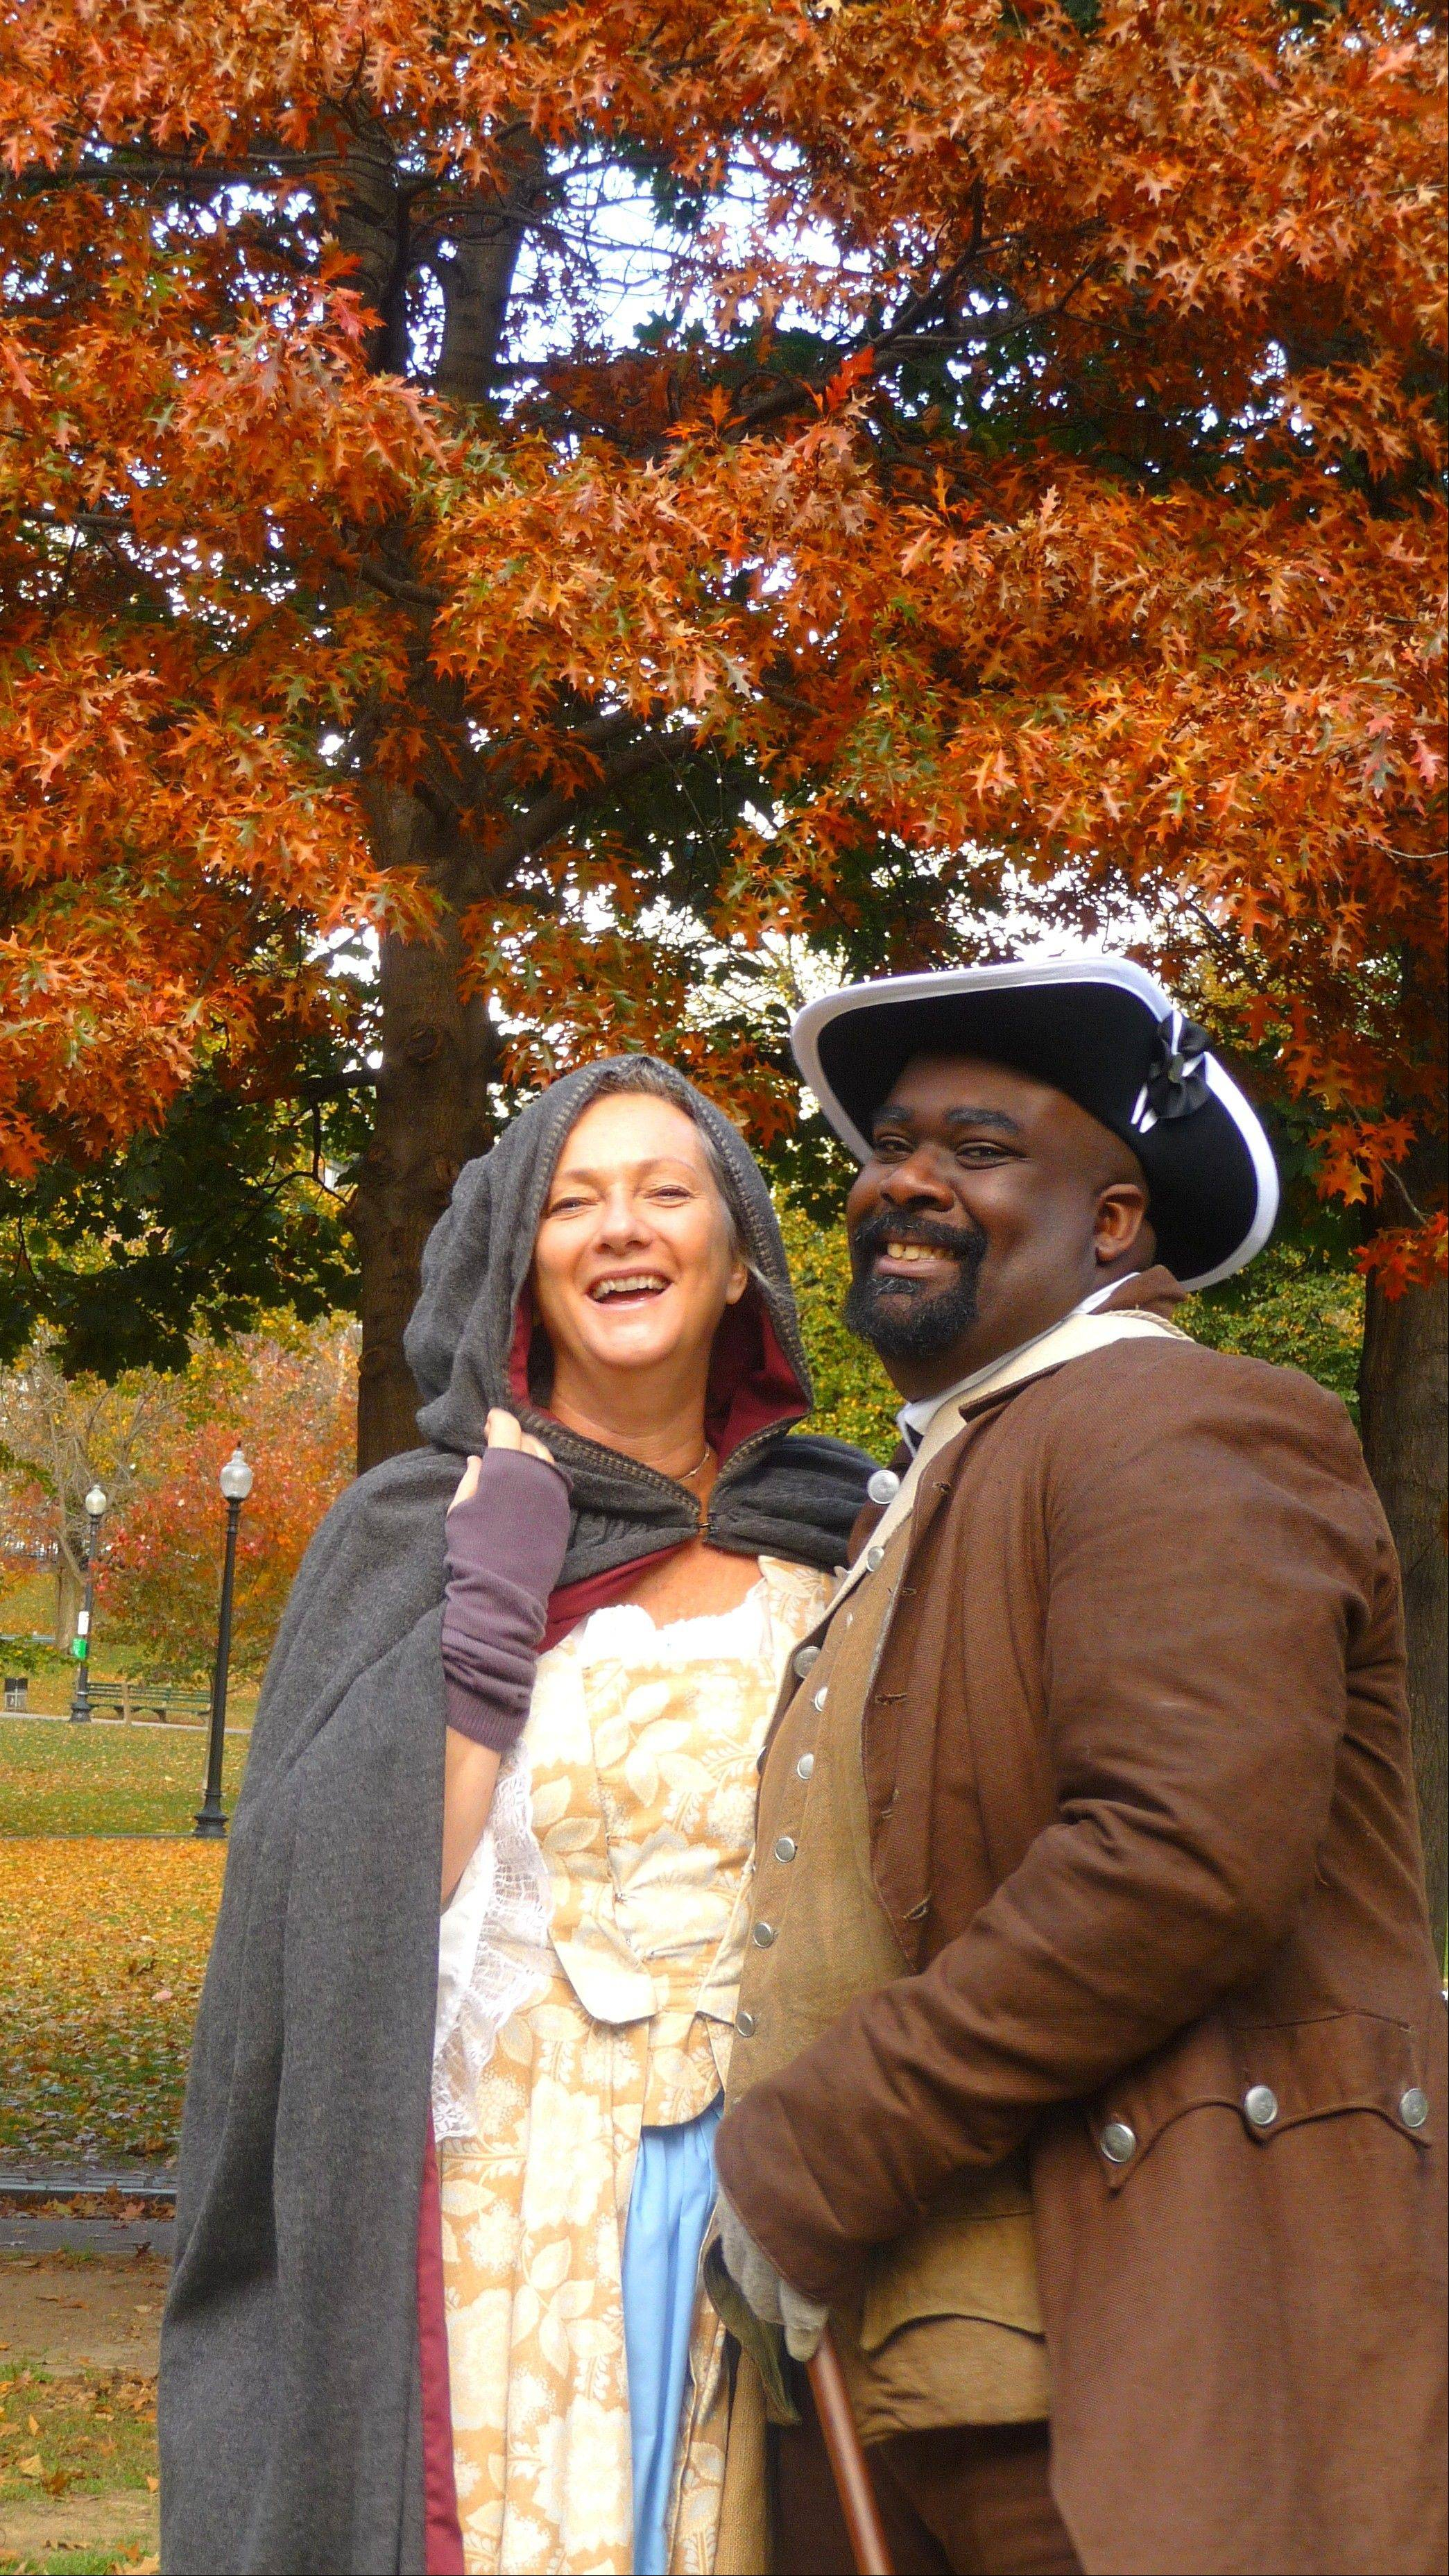 Boston Common and the Freedom Trail Foundation offer 18th century guides to show off the fall foliage beauty.